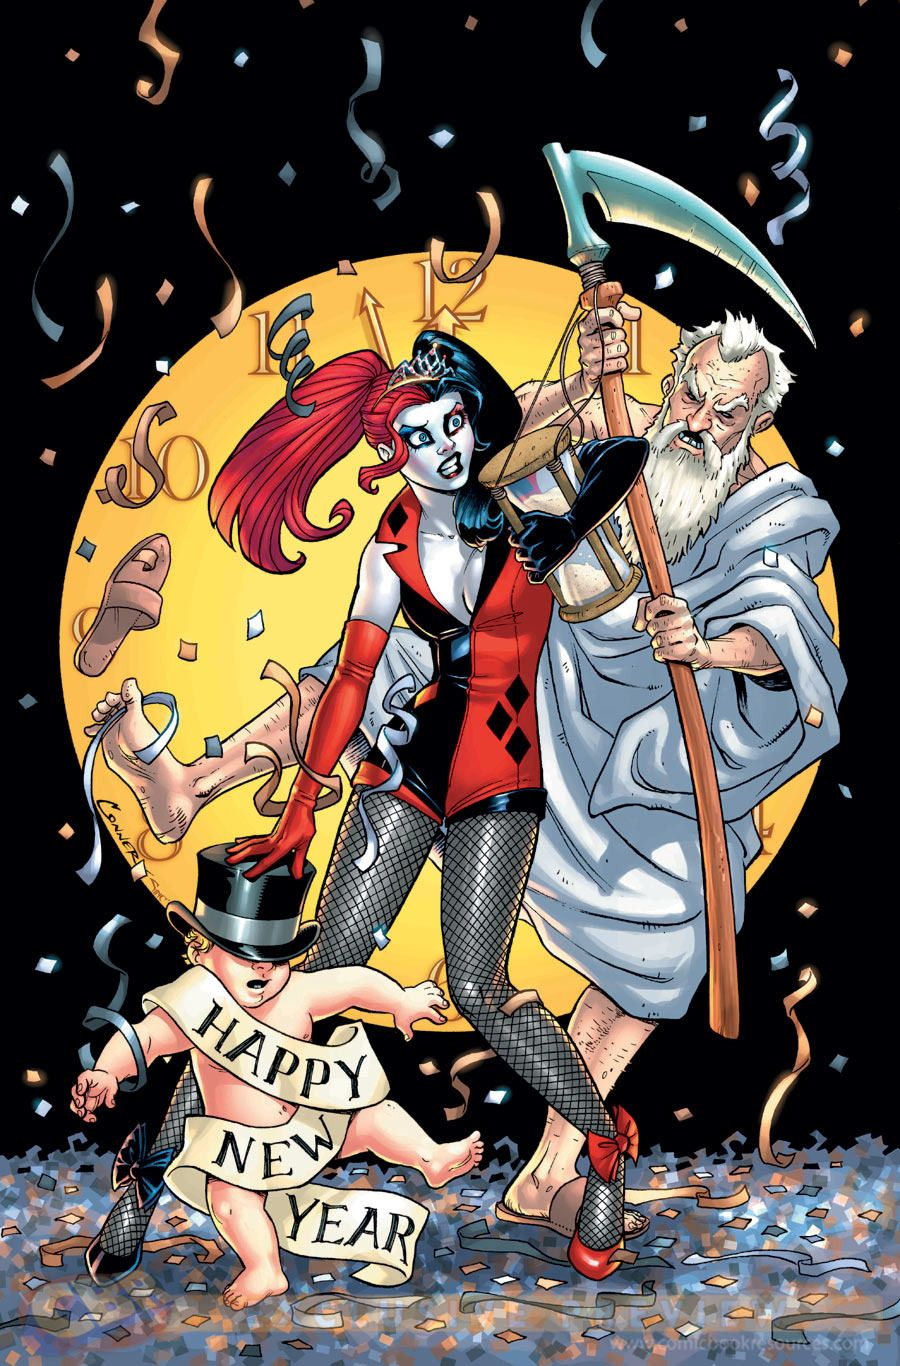 Pin on Clownie clownz, Harley Quiinnz & Jokerz